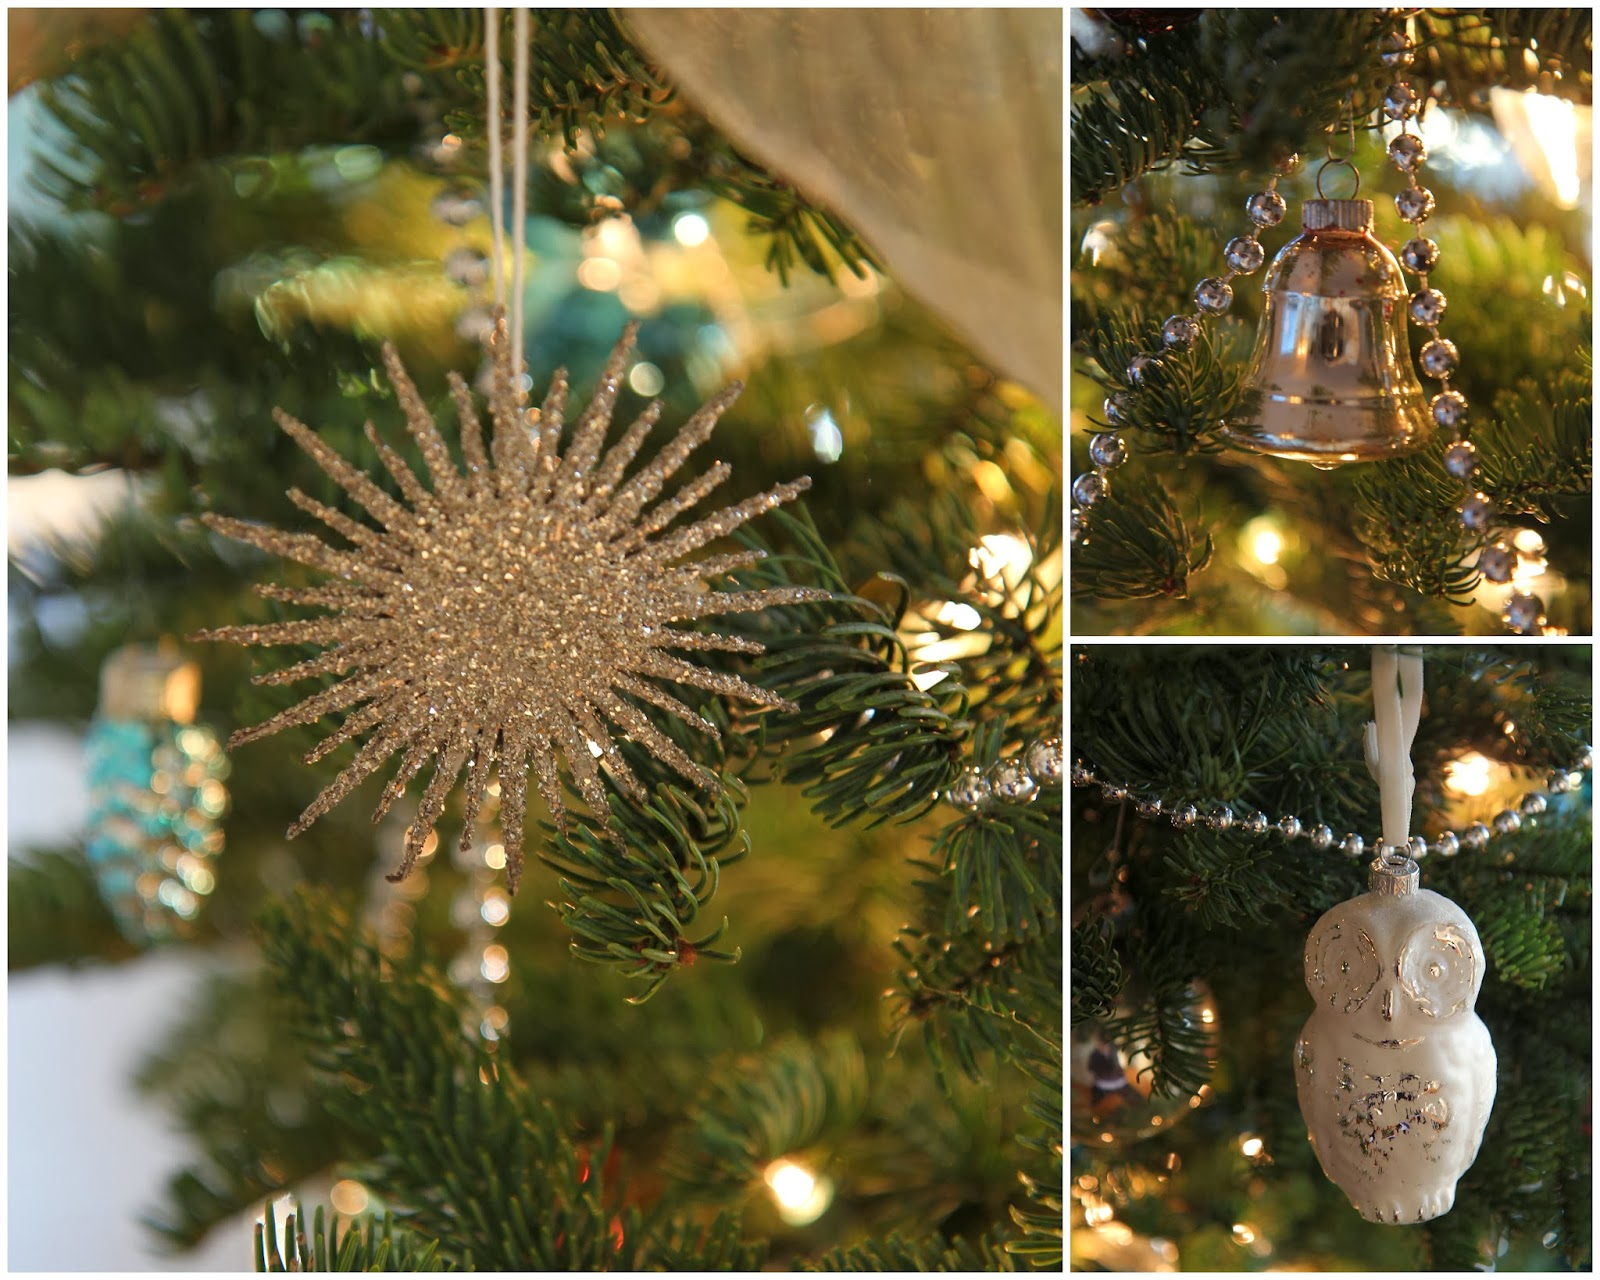 silver-and-white-ornaments